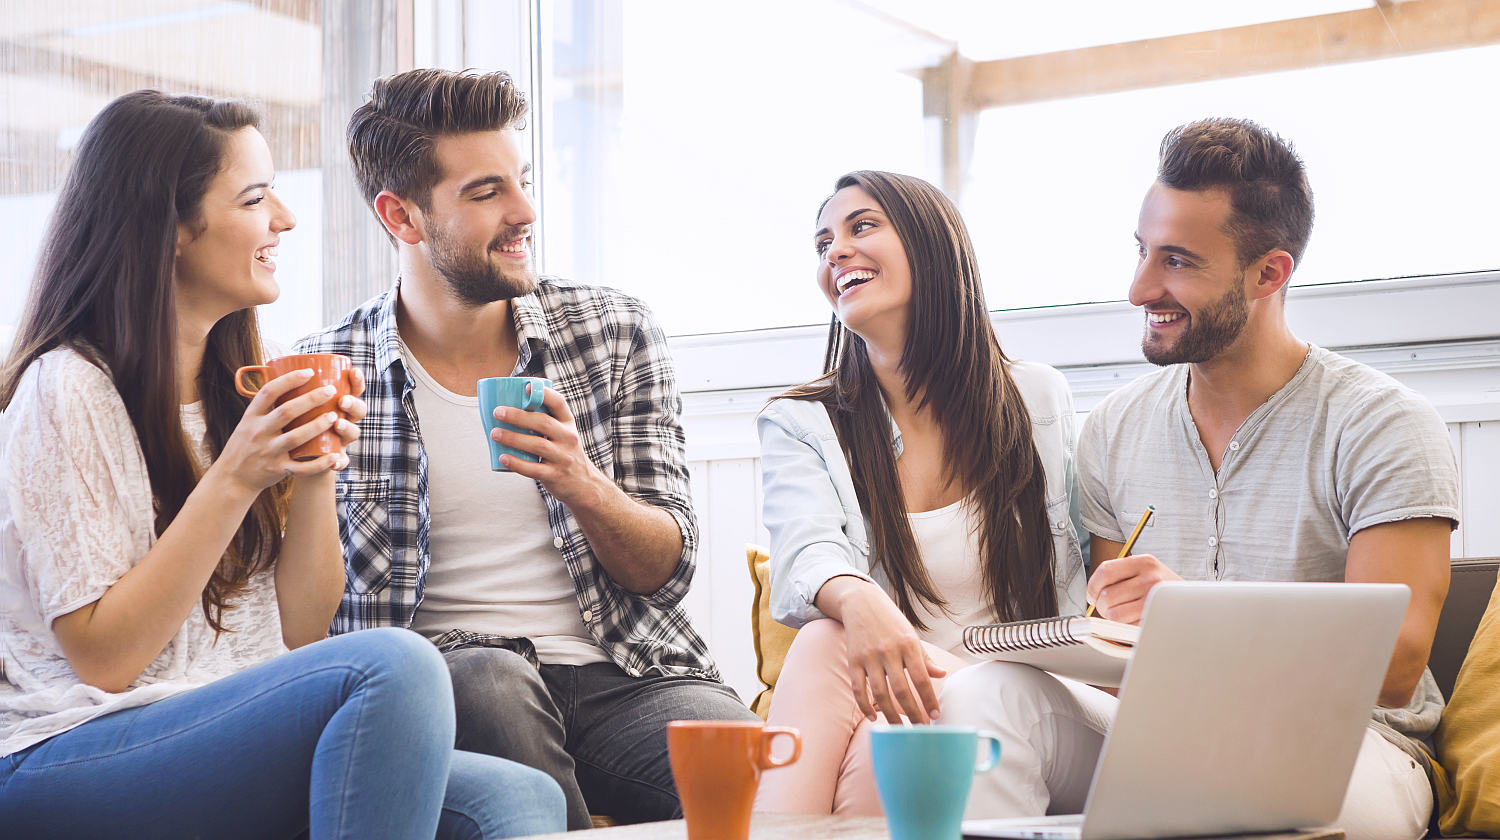 Group of friends meeting In the local Coffee Shop | How To Find Out Who Your Friends Are | The Friend Test | Find out who your friends are | friends and family | Featured